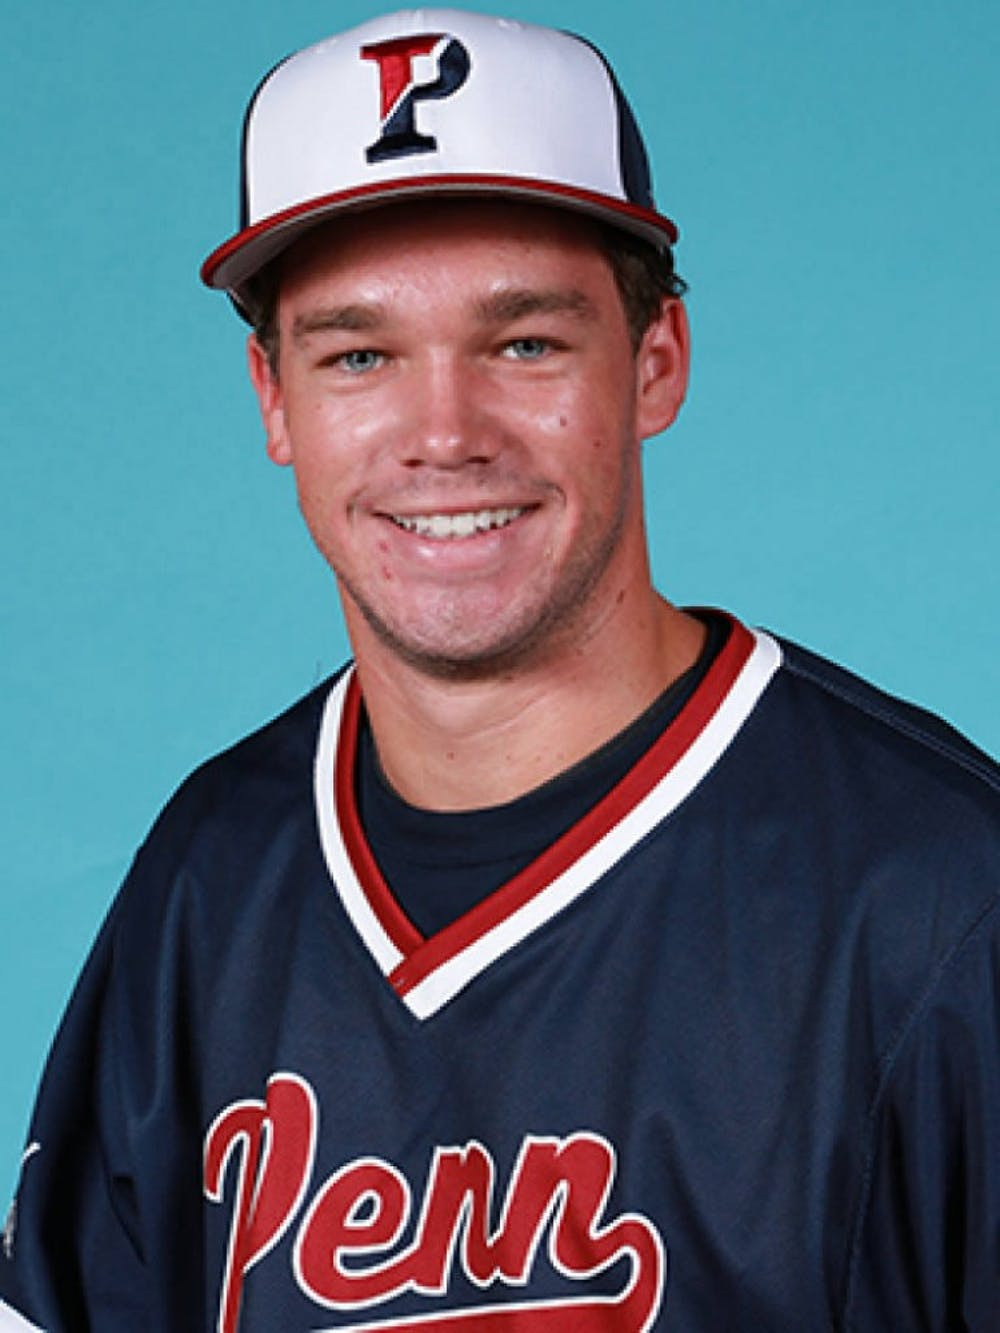 <p>Along with several other promising rookies, <strong>freshman infielder Ryan Schroth</strong> adds depth to an already loaded lineup for Penn baseball.</p>